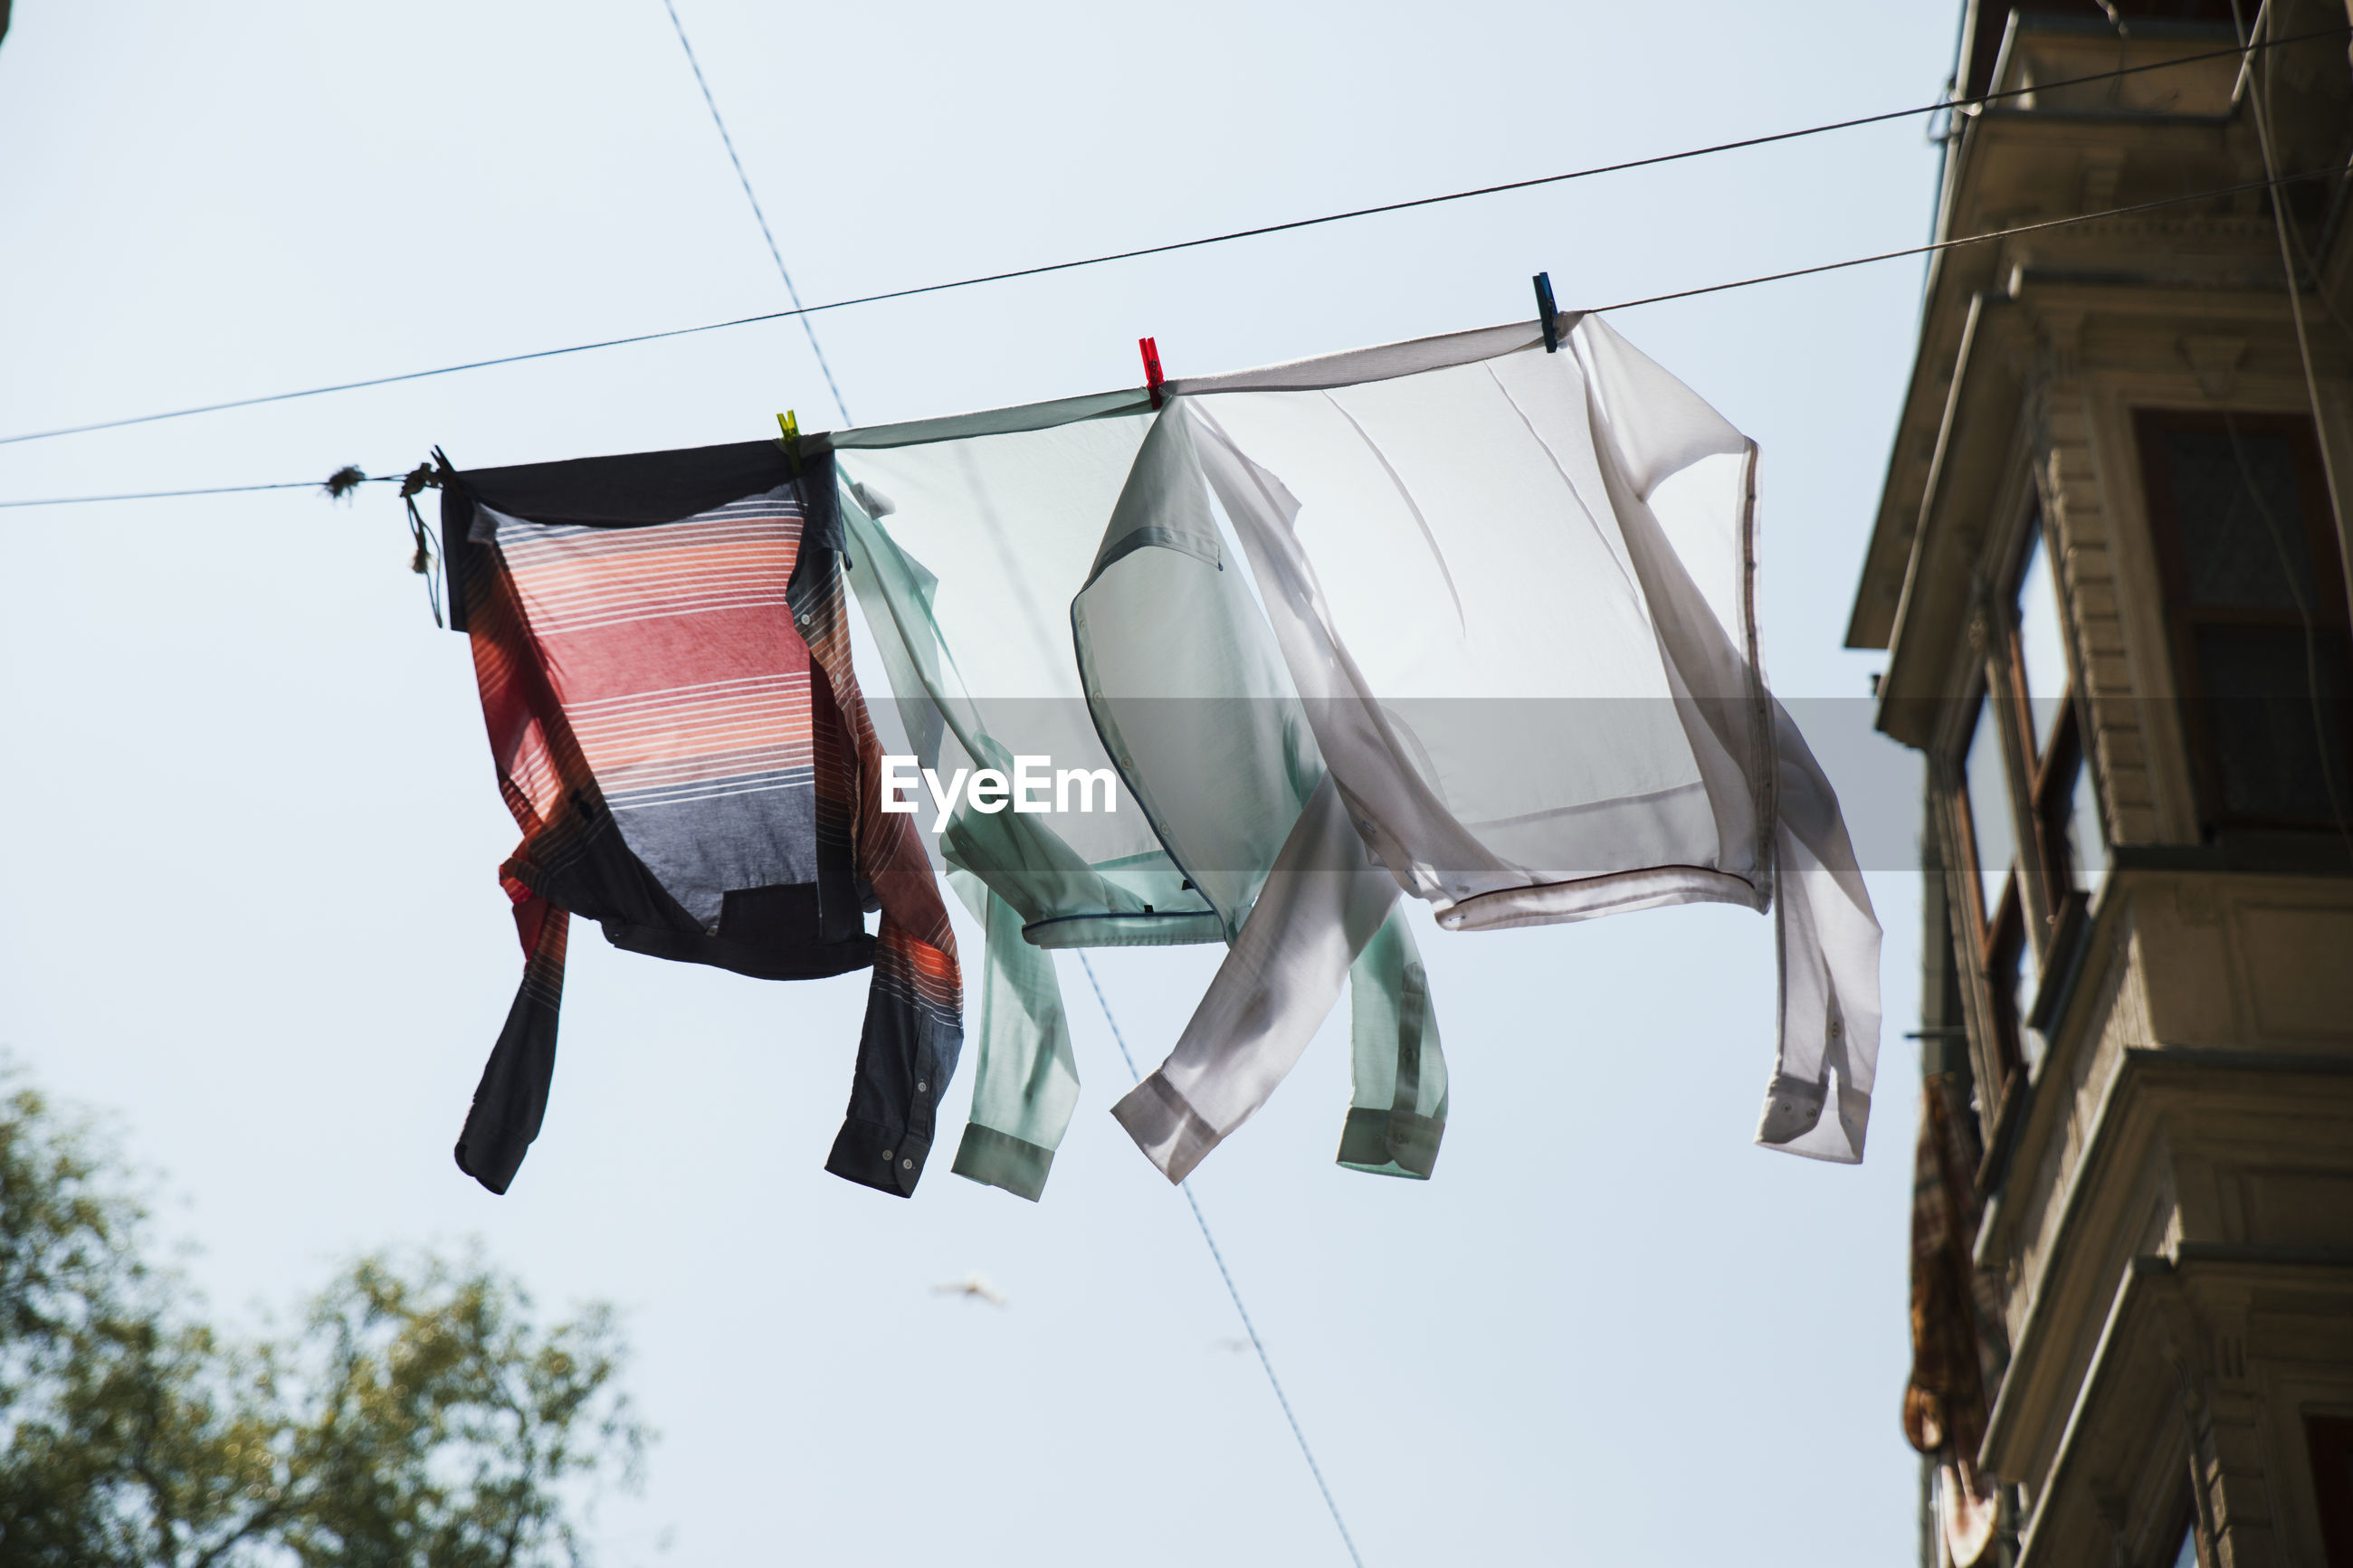 Low angle view of clothes drying on clothesline by building against sky